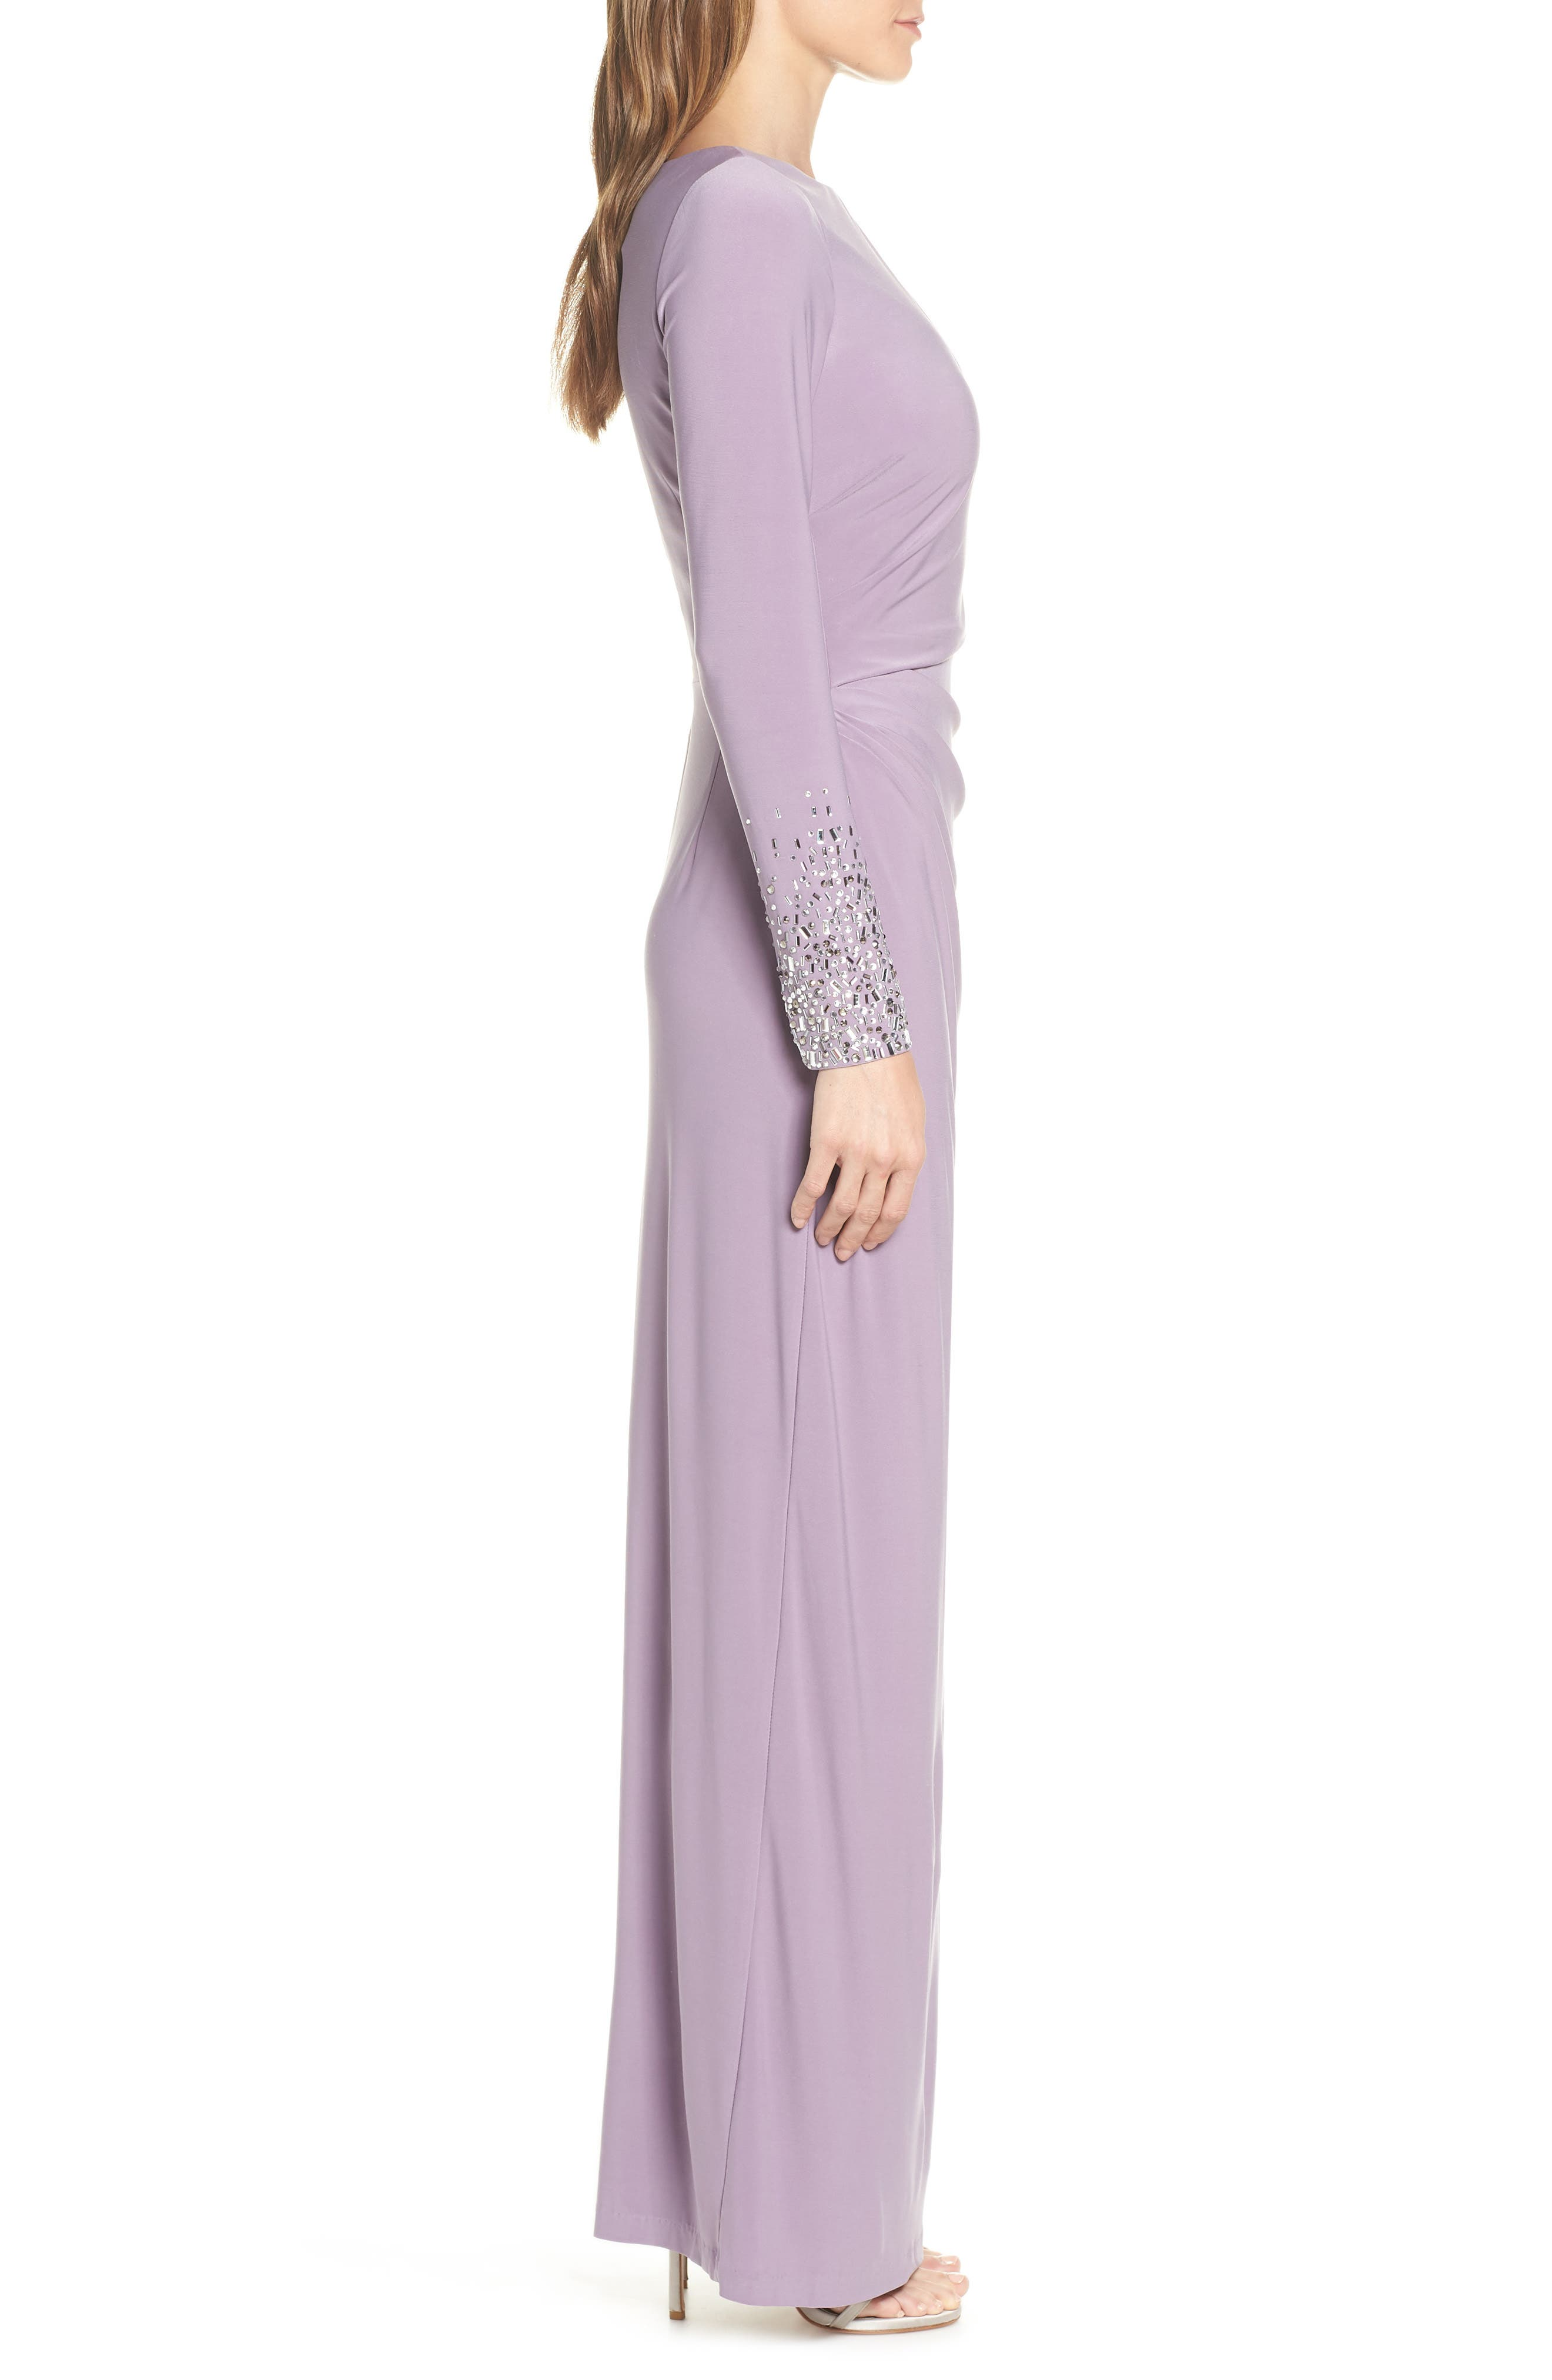 VINCE CAMUTO,                             Embellished Sleeve Ruched Evening Dress,                             Alternate thumbnail 3, color,                             LILAC